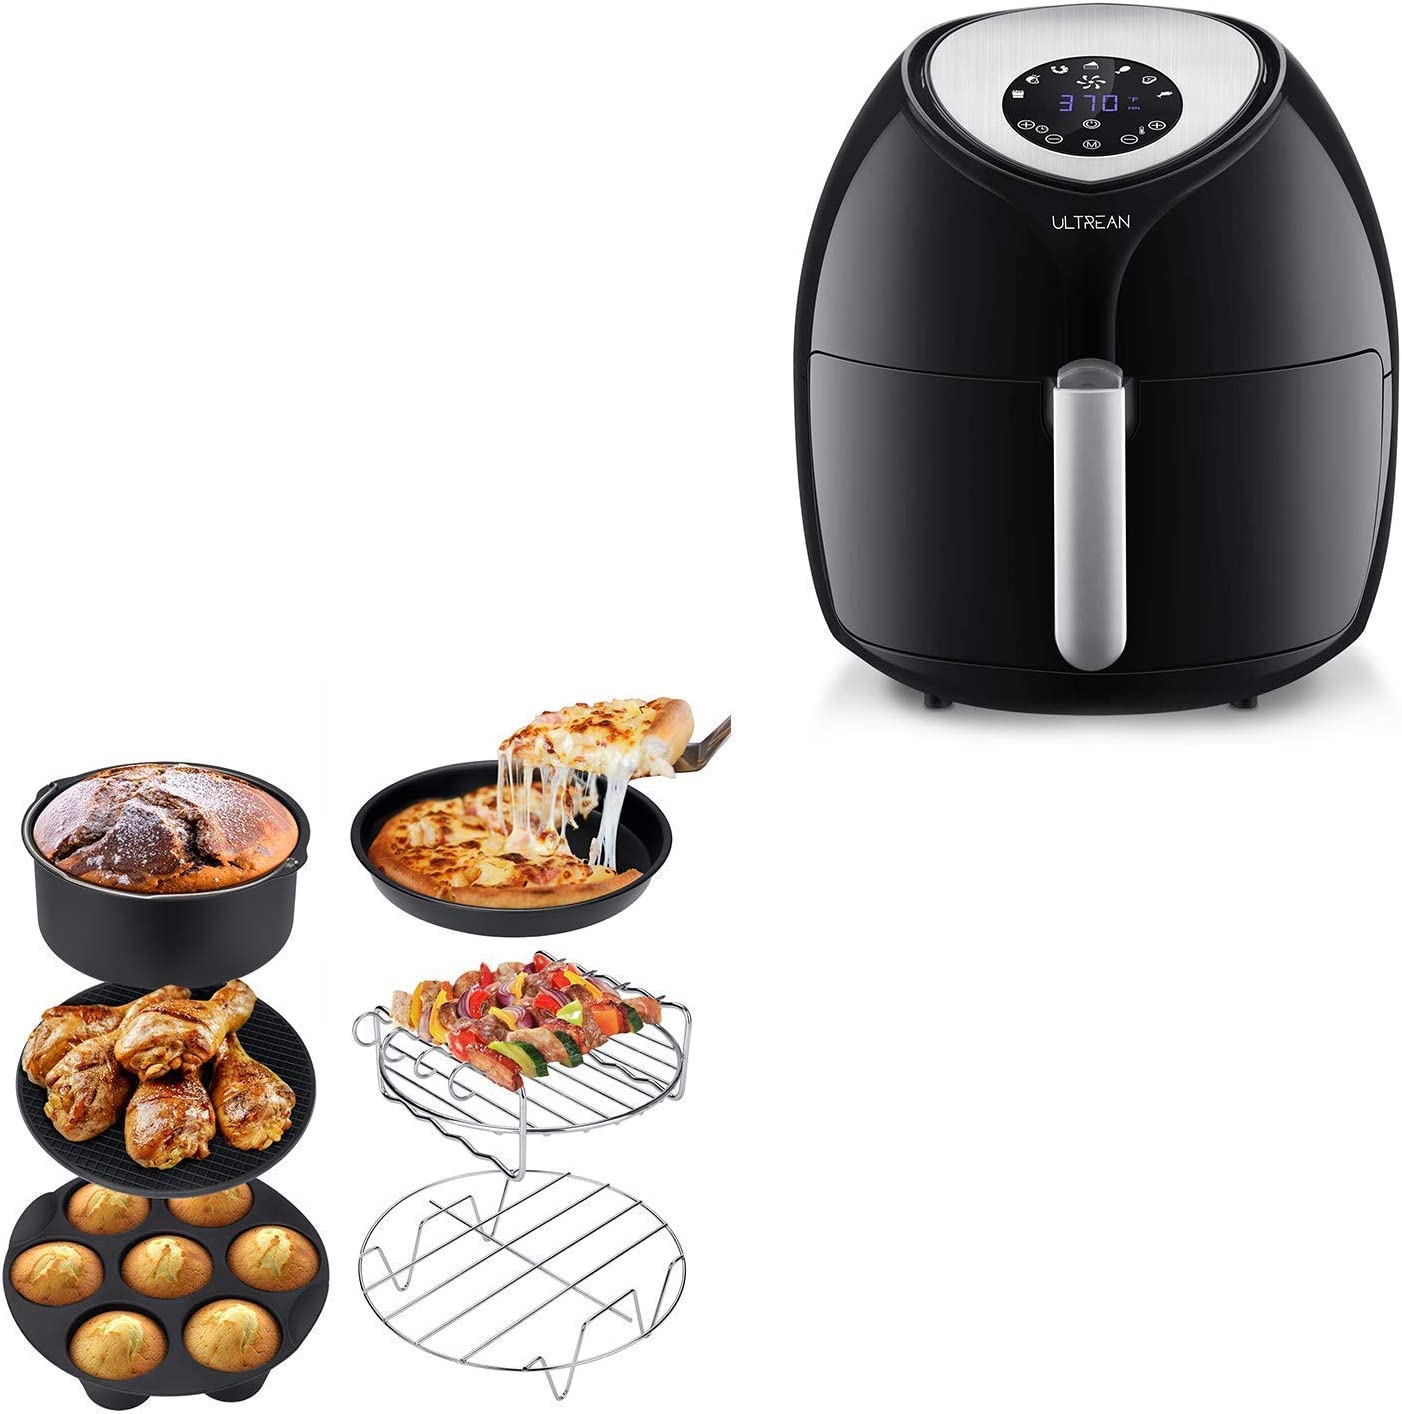 Ultrean 6 Quart Air Fryer, Large Family Size Electric Hot Air Fryers XL Oven Oilless Cooker and Air Fryer Accessories, Set of 6 Fit All 5.8Qt,6Qt Air Fryers, BPA Free, FDA Compliant, XL